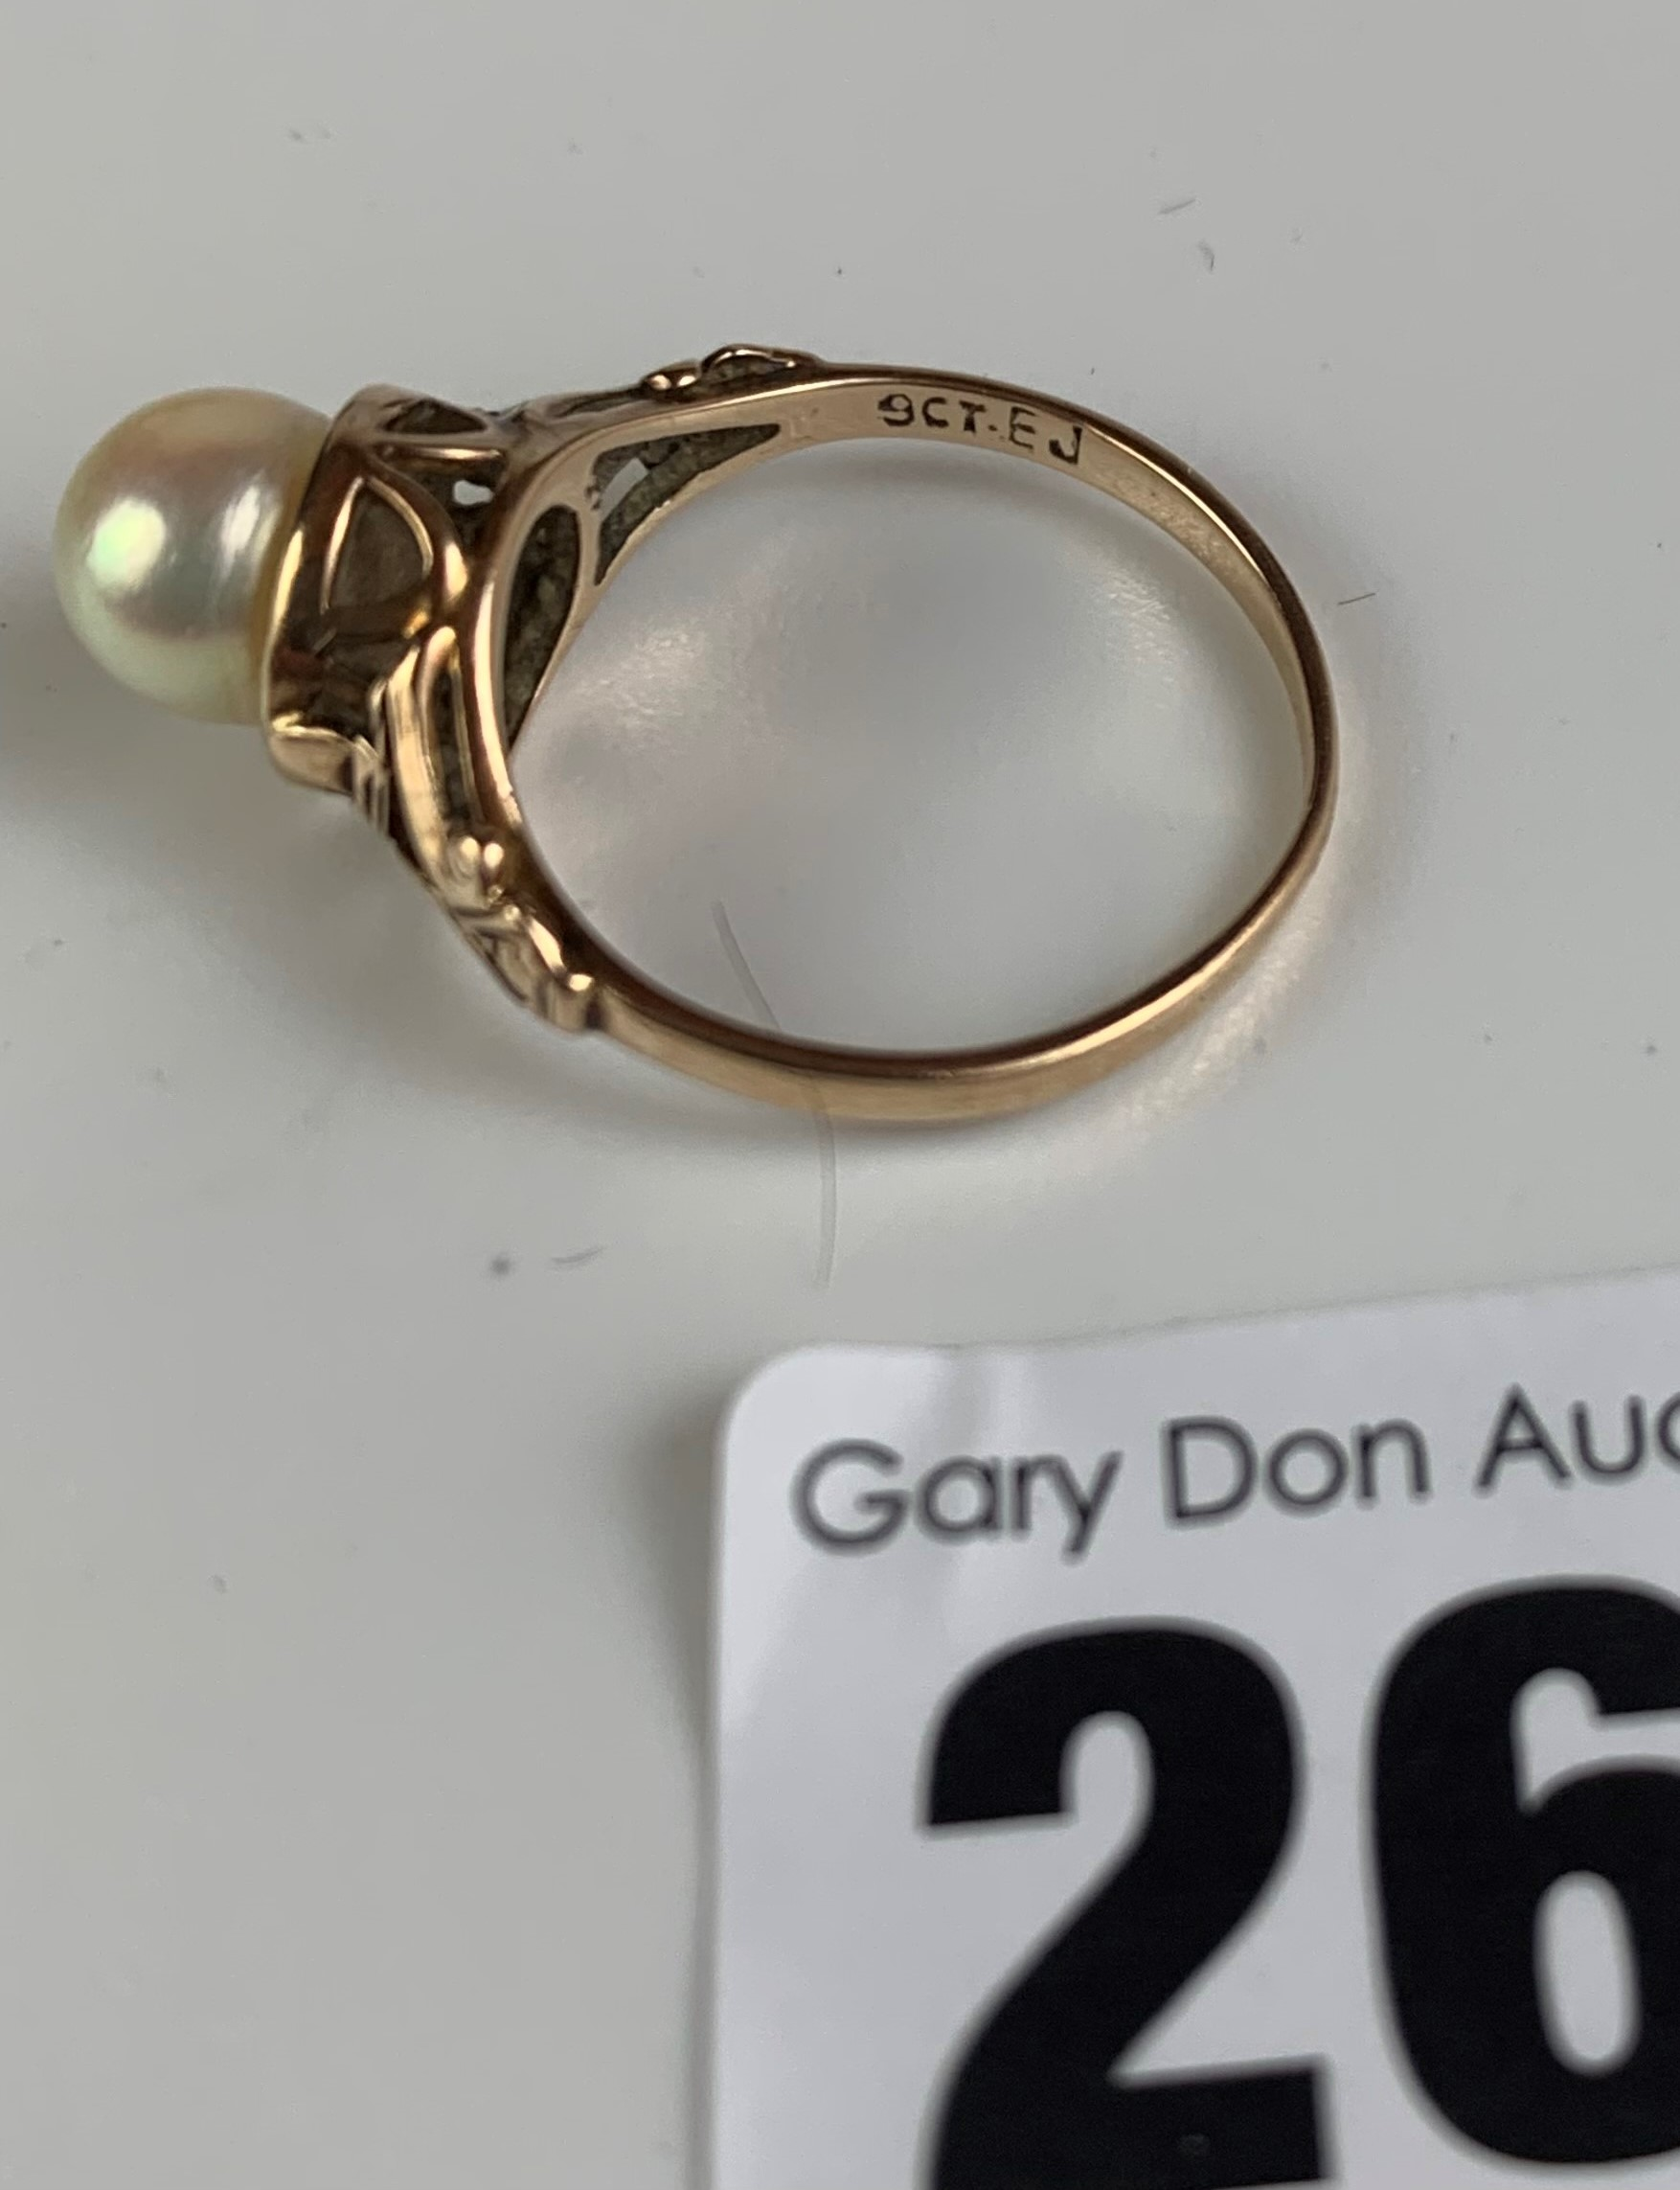 9k gold and pearl ring, size M, w: 2.4 gms - Image 5 of 6